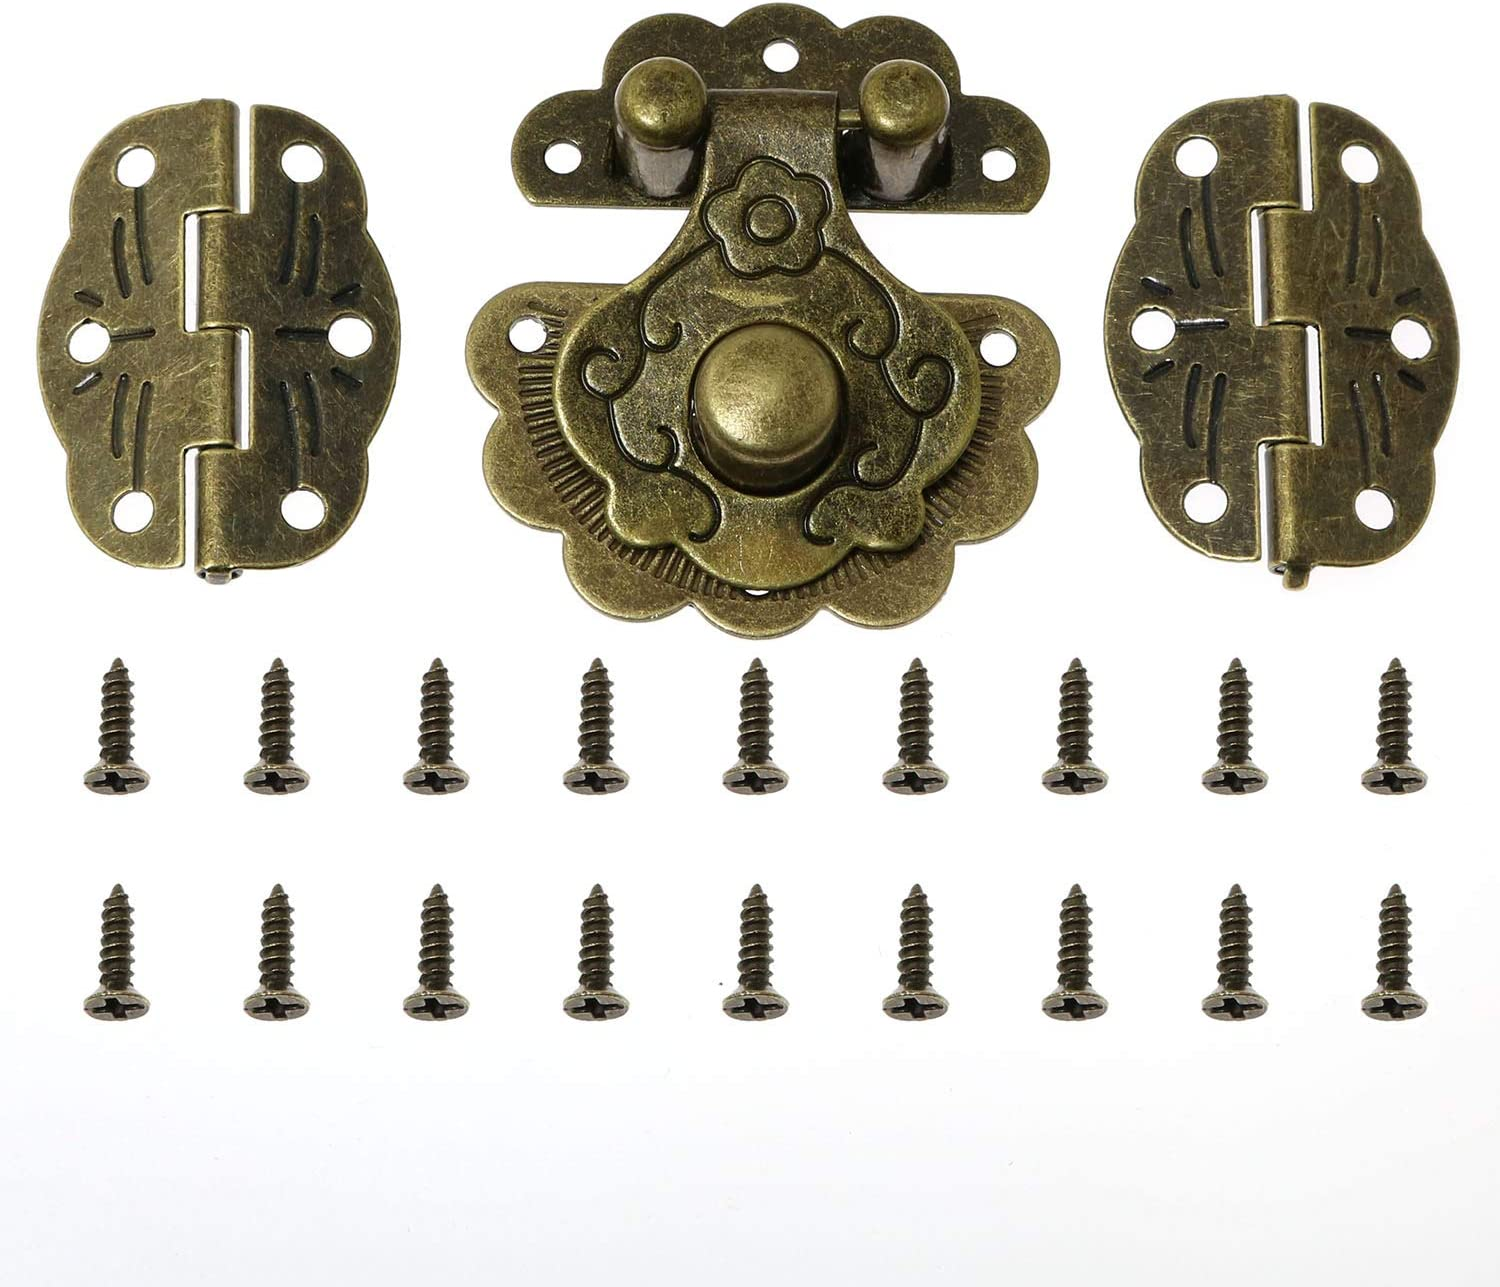 Magic&shell 40x36mm Decorative Antique Style Antique Bronze Embossing Decorative Hasp Latch Lock with Mini Hinge and Screws for Furniture Cabinet Wood Case Jewelry Box